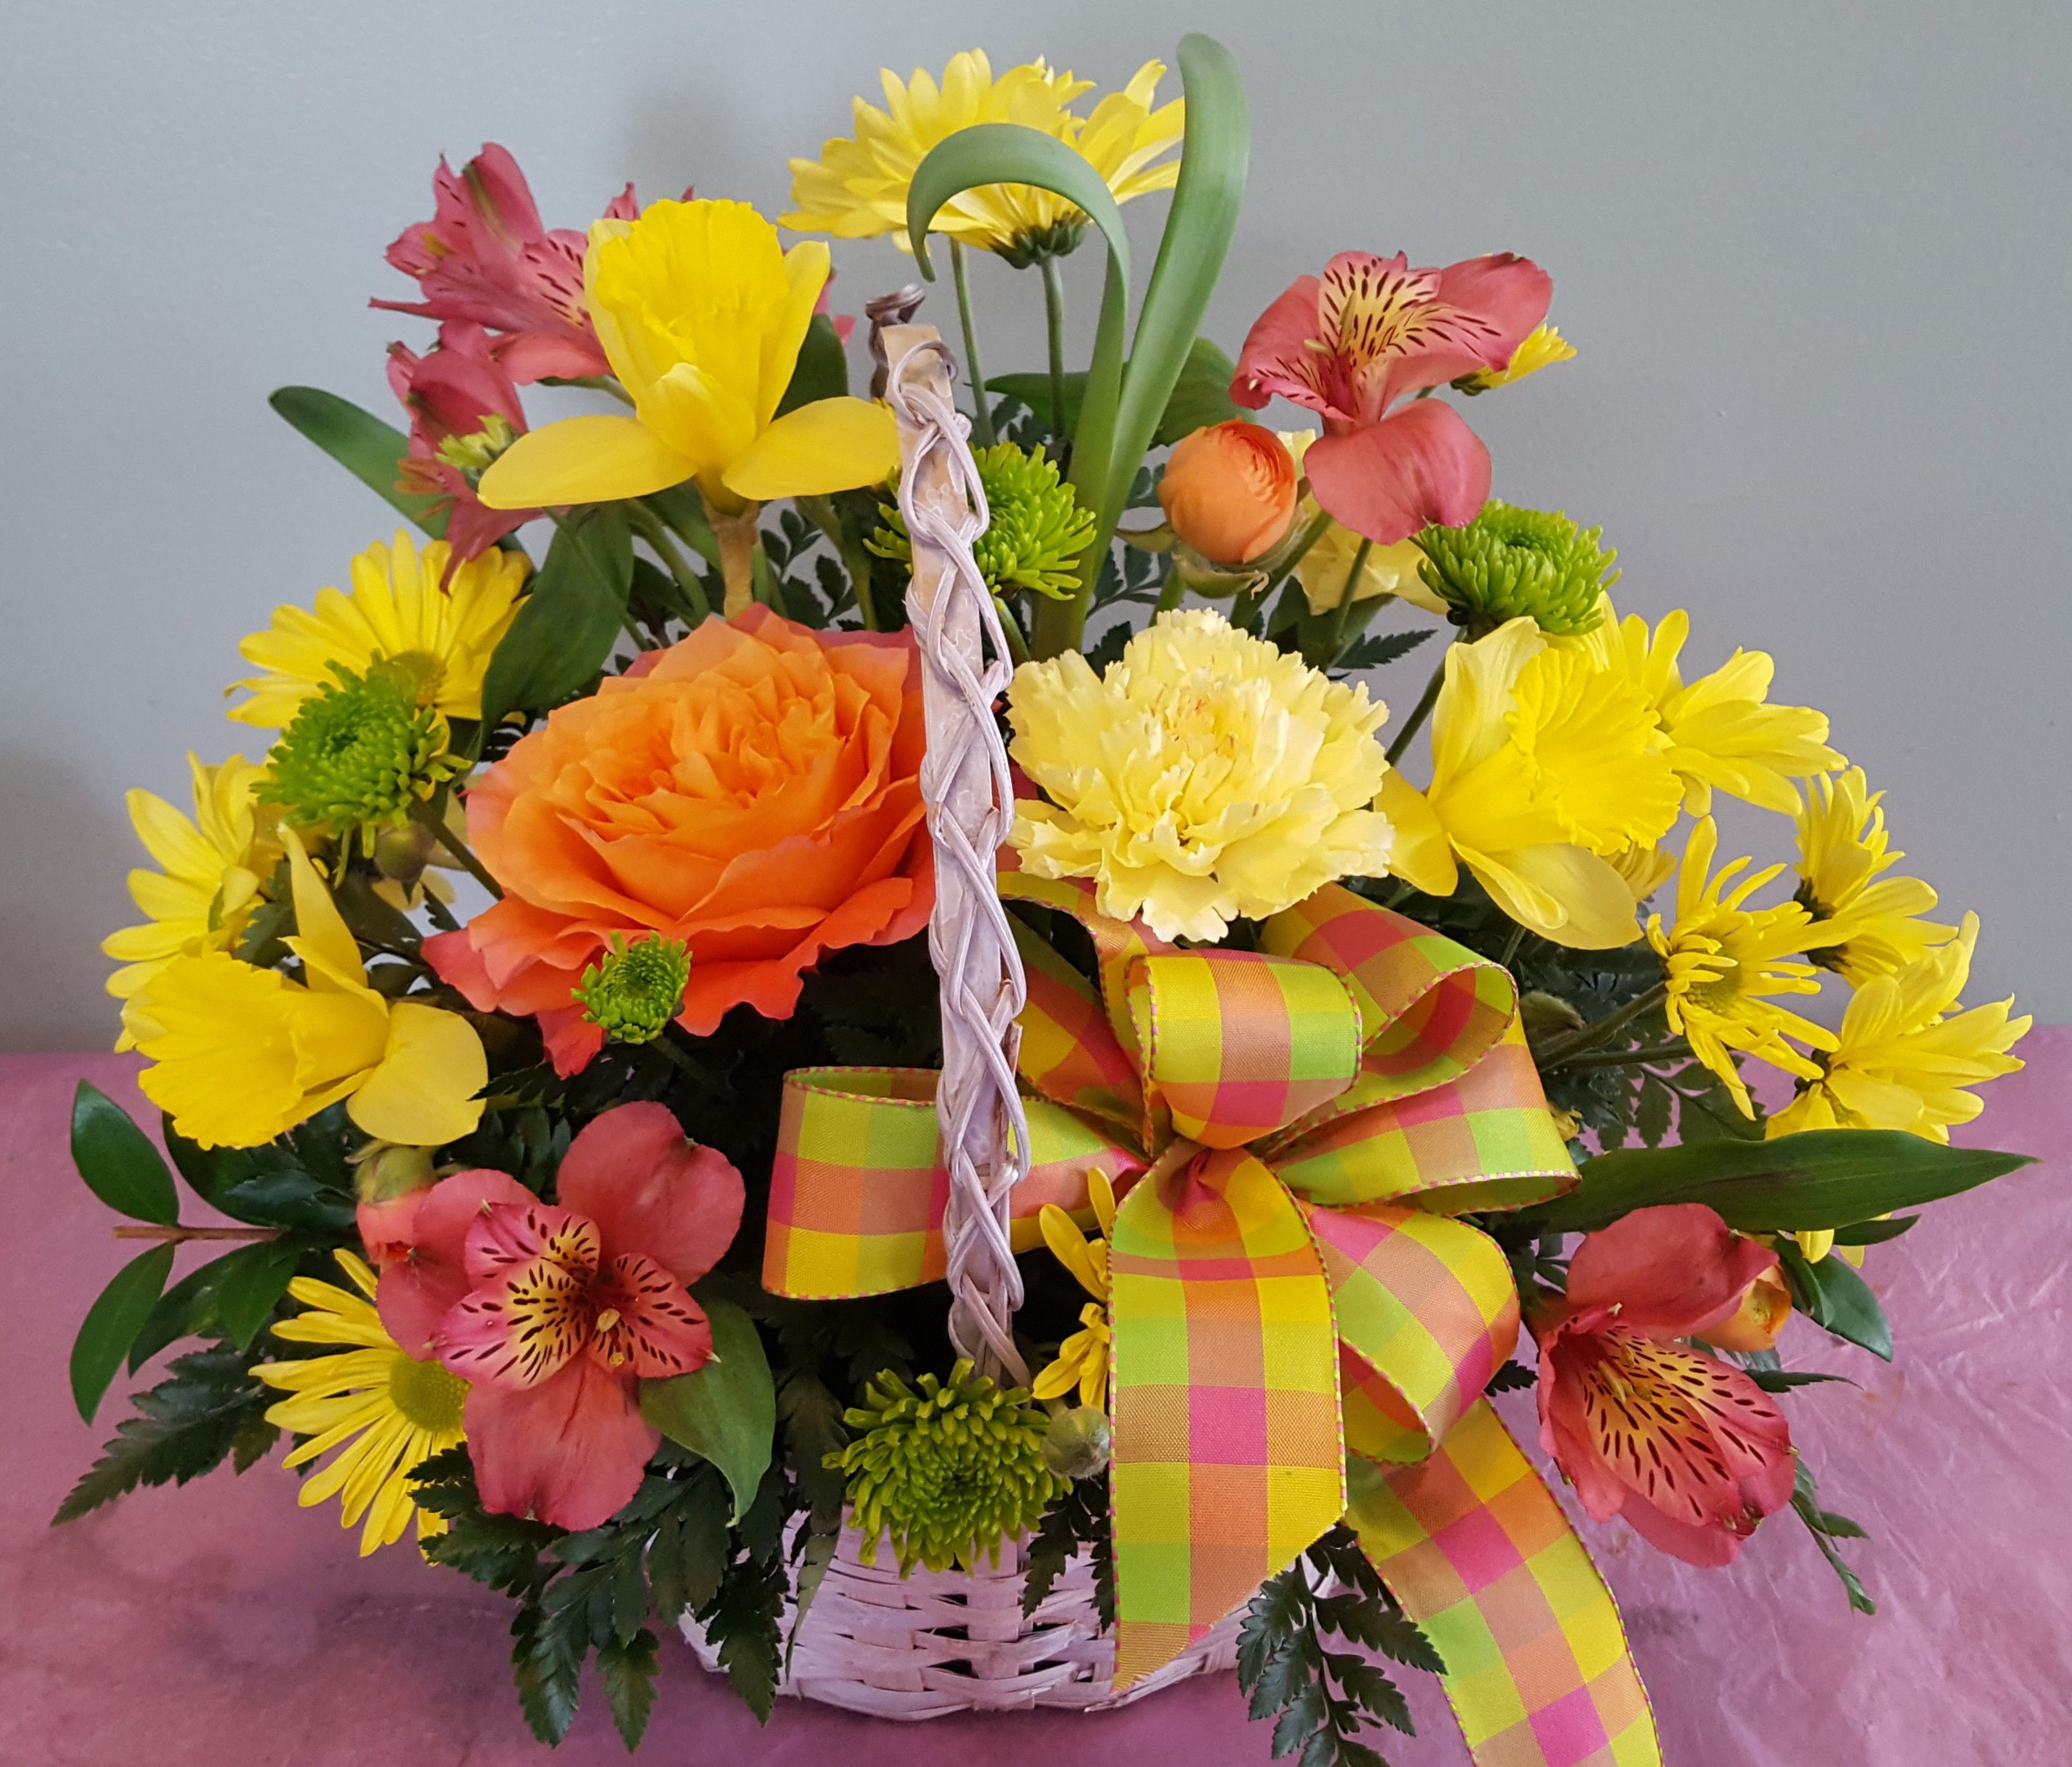 Easter Basket Full Of Happy Spring Flowers Treat Someone To Some